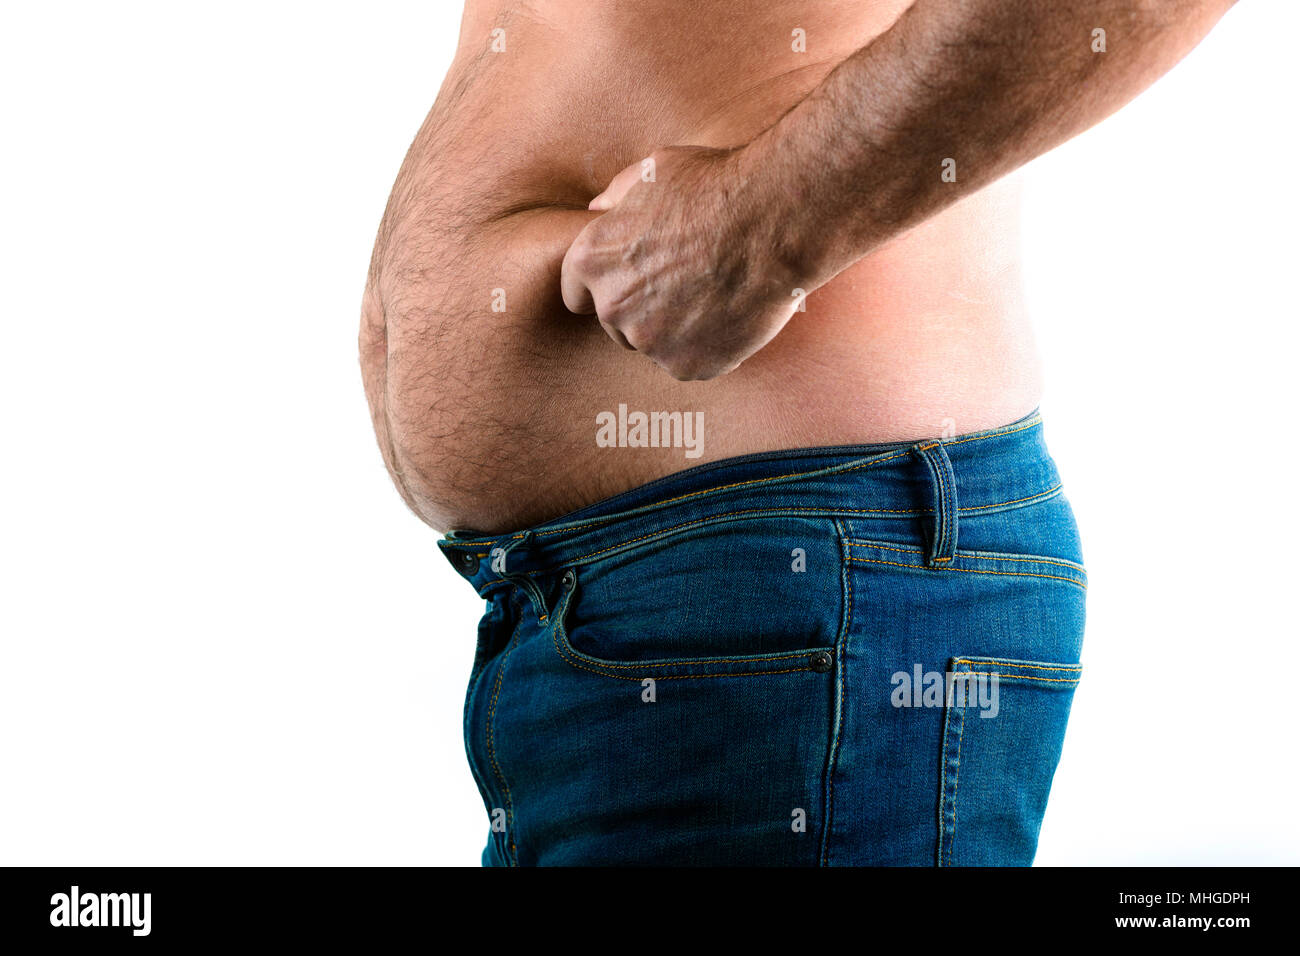 overweight older man with a paunch - Stock Image